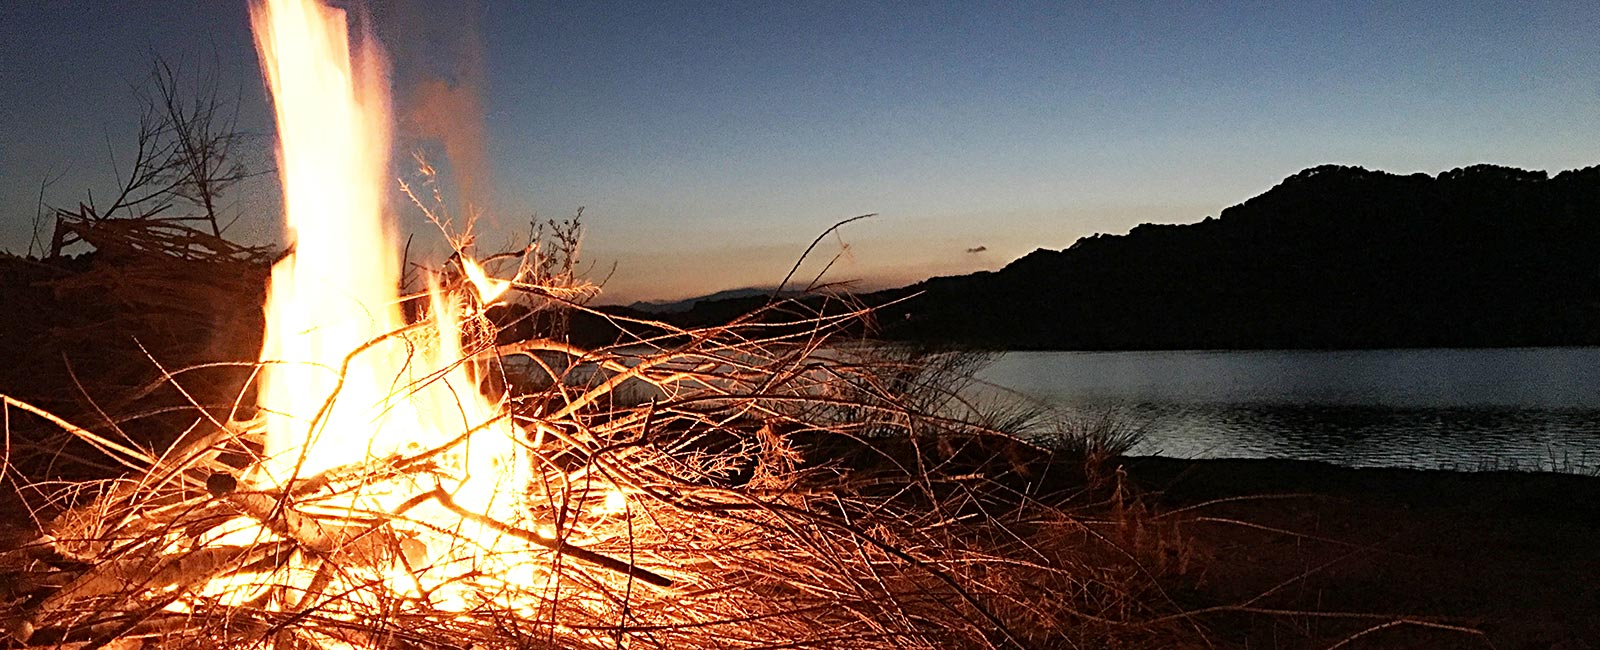 Abendliches Lagerfeuer am Embalse del Guadalhorce